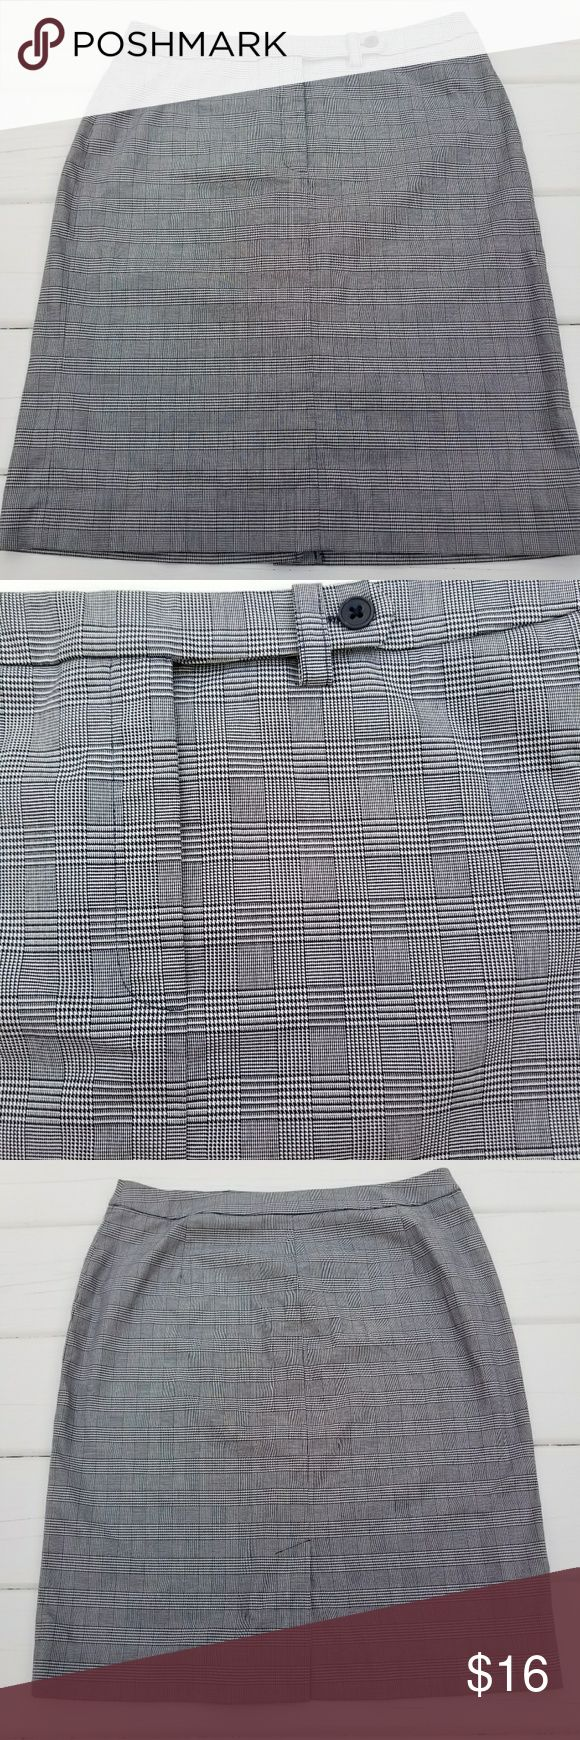 Jones New York Signature navy pencil skirt Navy and white glen plaid cotton and spandex pencil skirt with back kick pleat  Waist 31.75  Back length 21.75 Jones New York Skirts Pencil